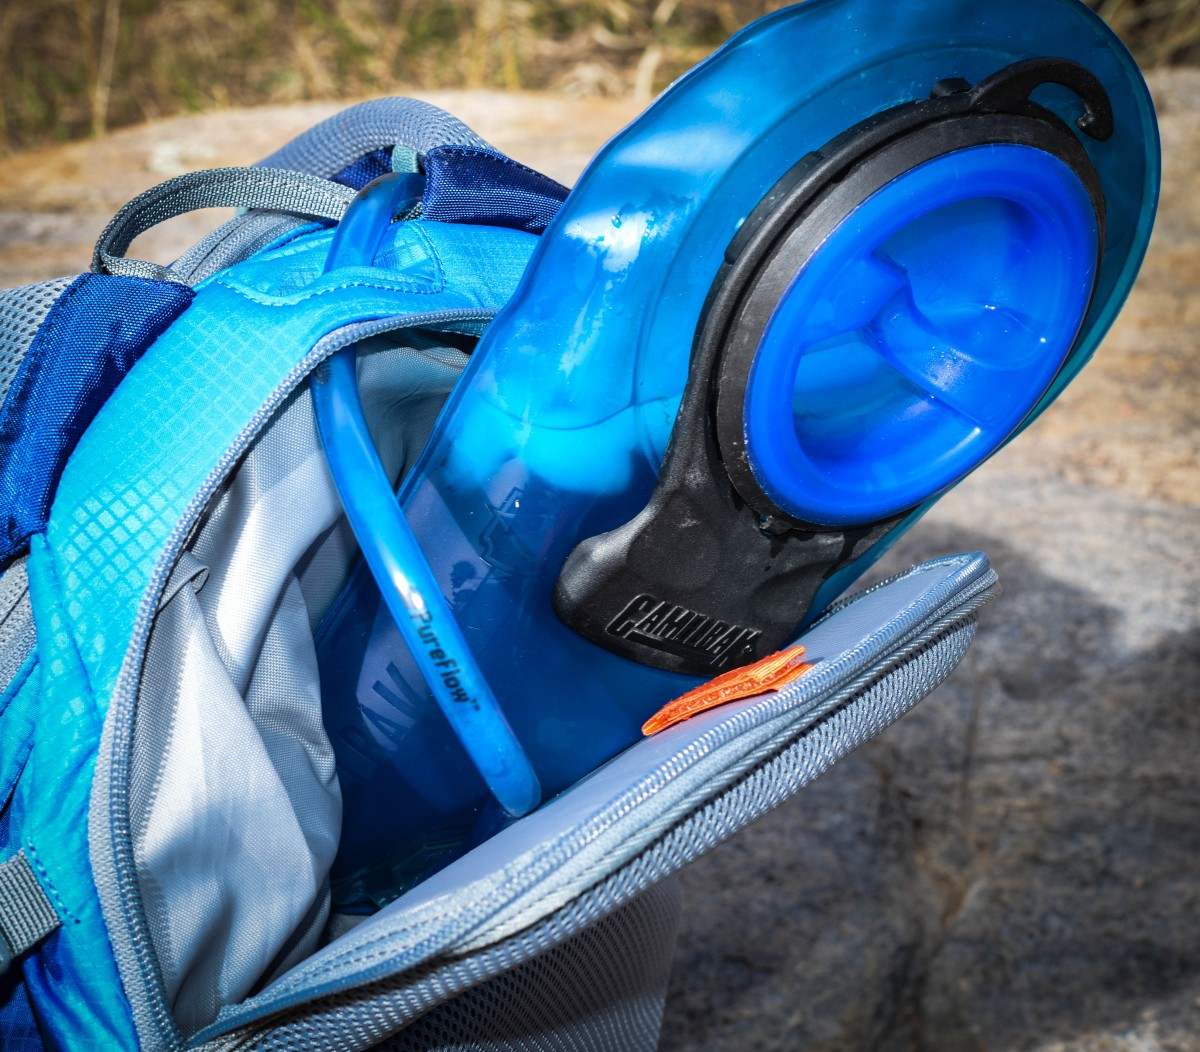 This is a 100oz Camelbak reservoir with about 65oz in it that I was able to squeeze in the pack with a little room to spare.